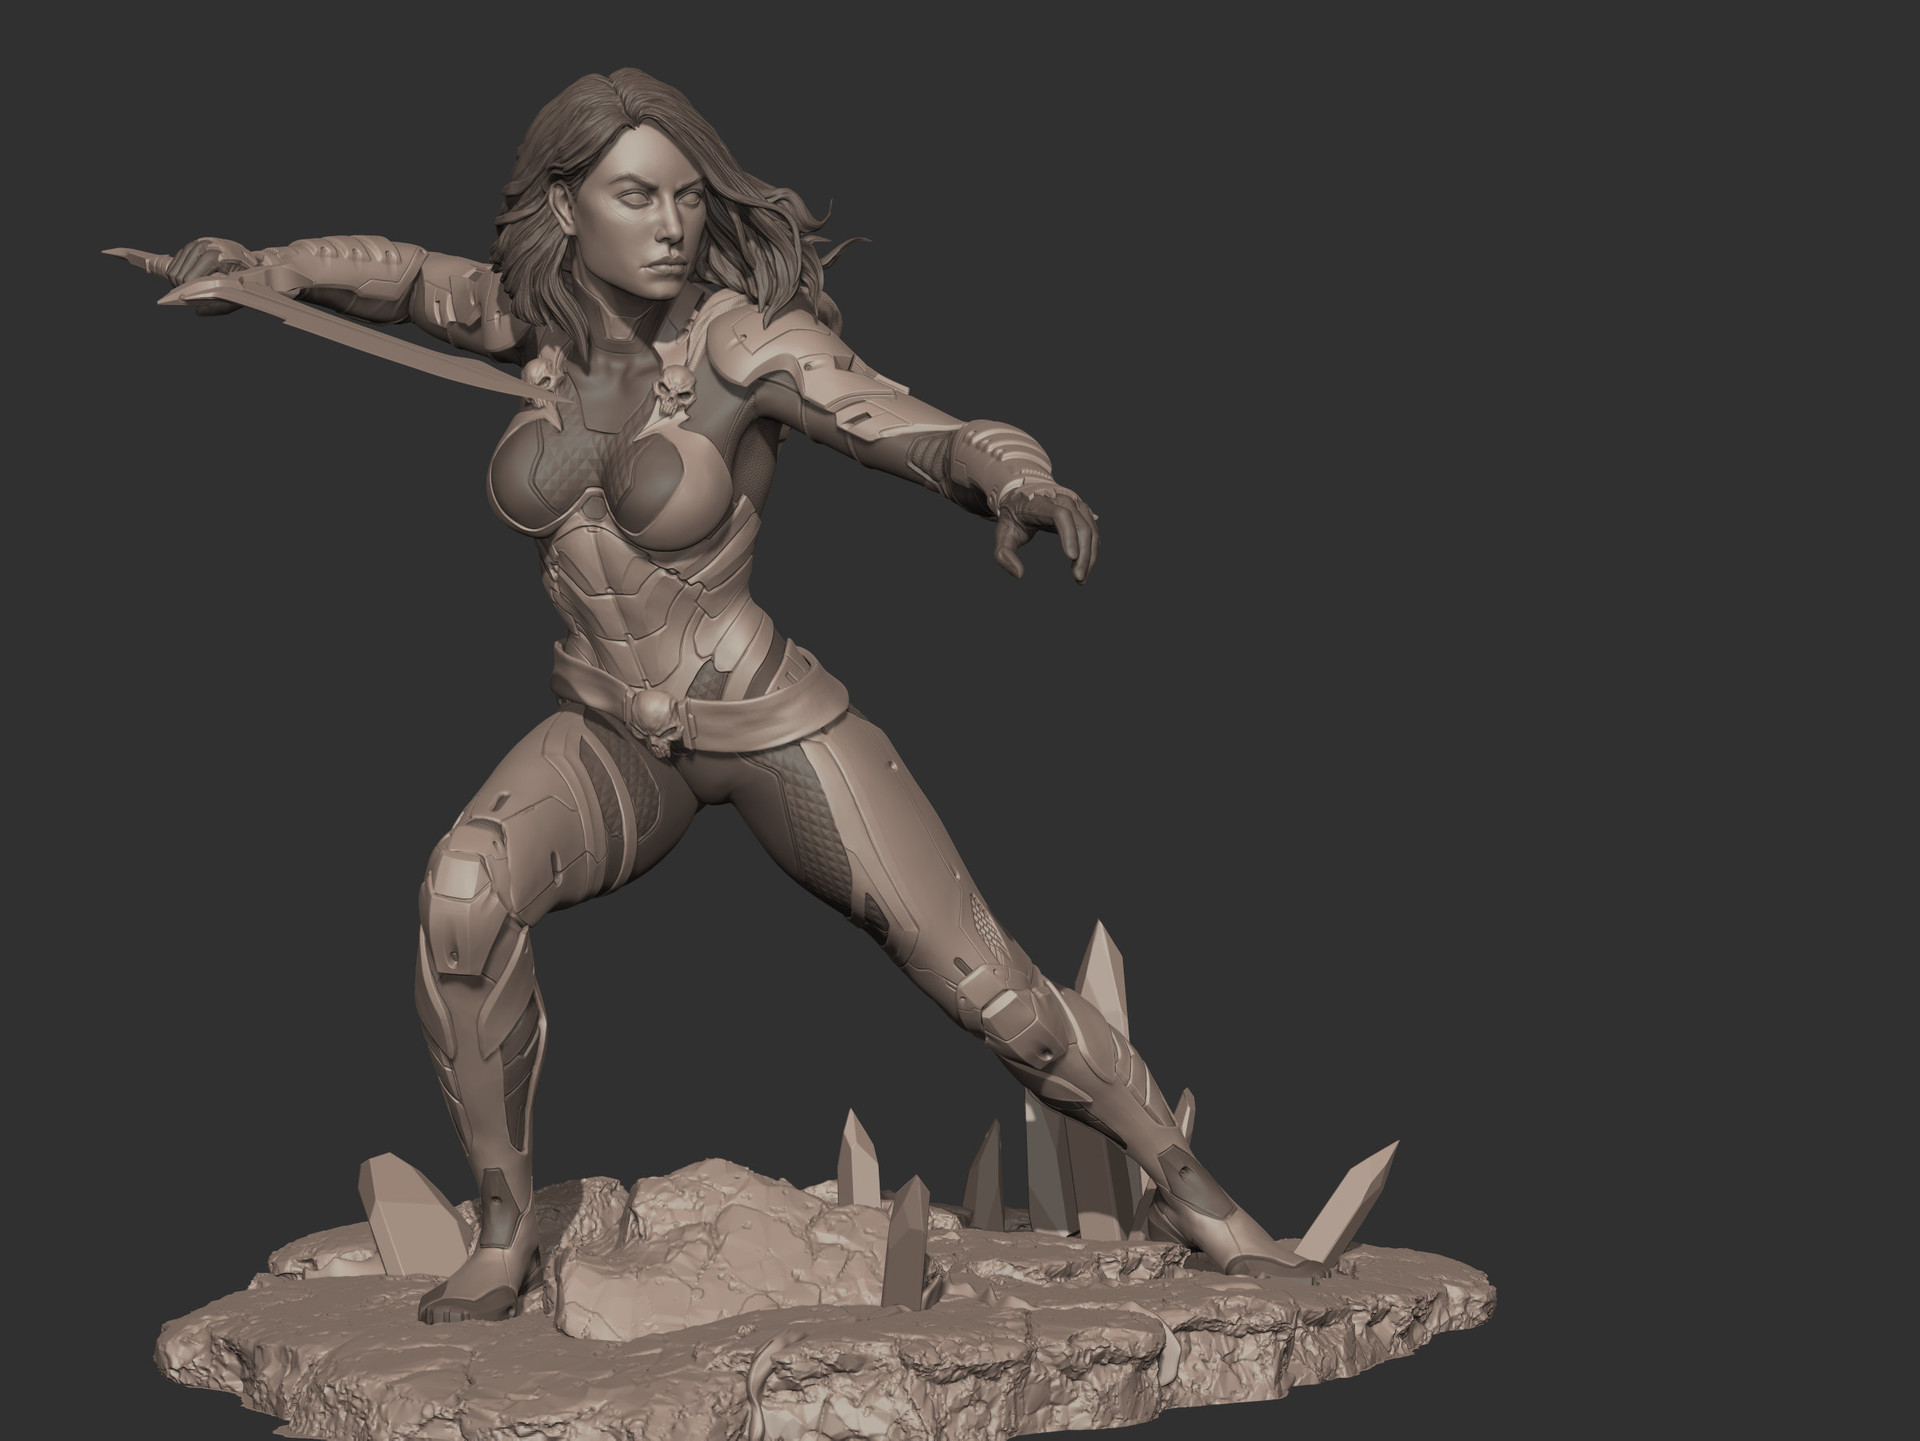 David giraud zbrush document4 3